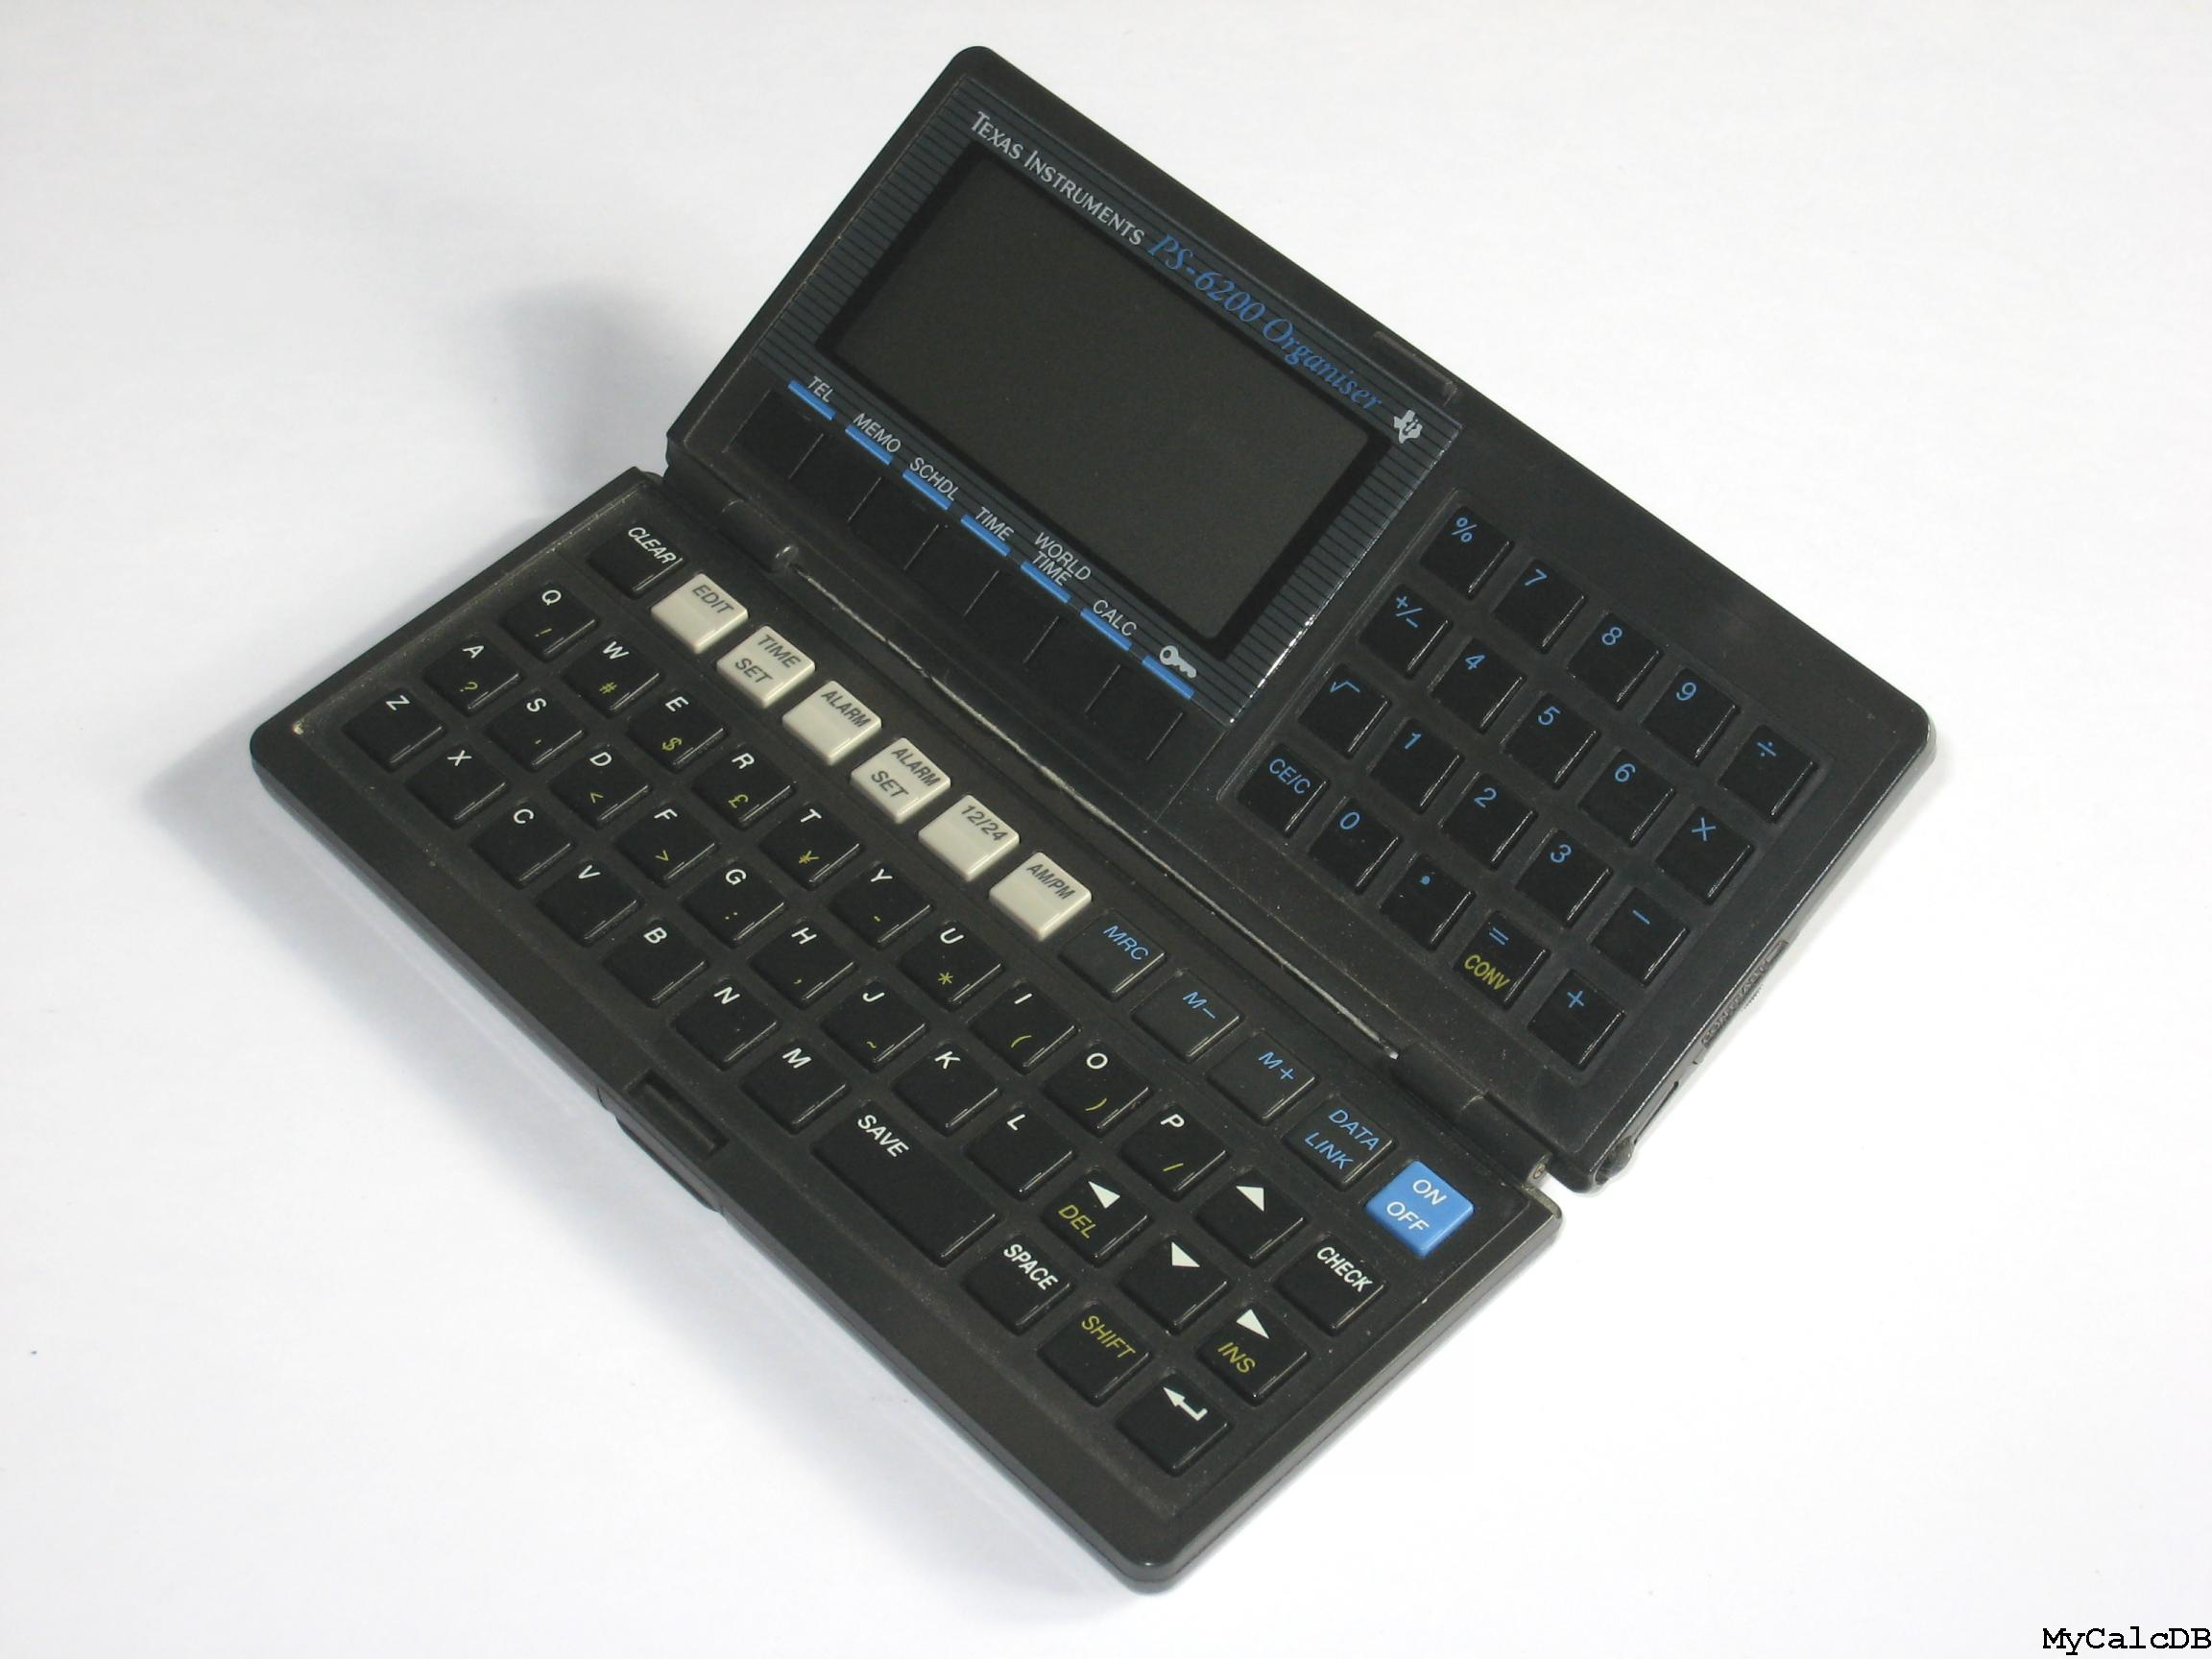 Texas Instruments PS-6200 Organiser